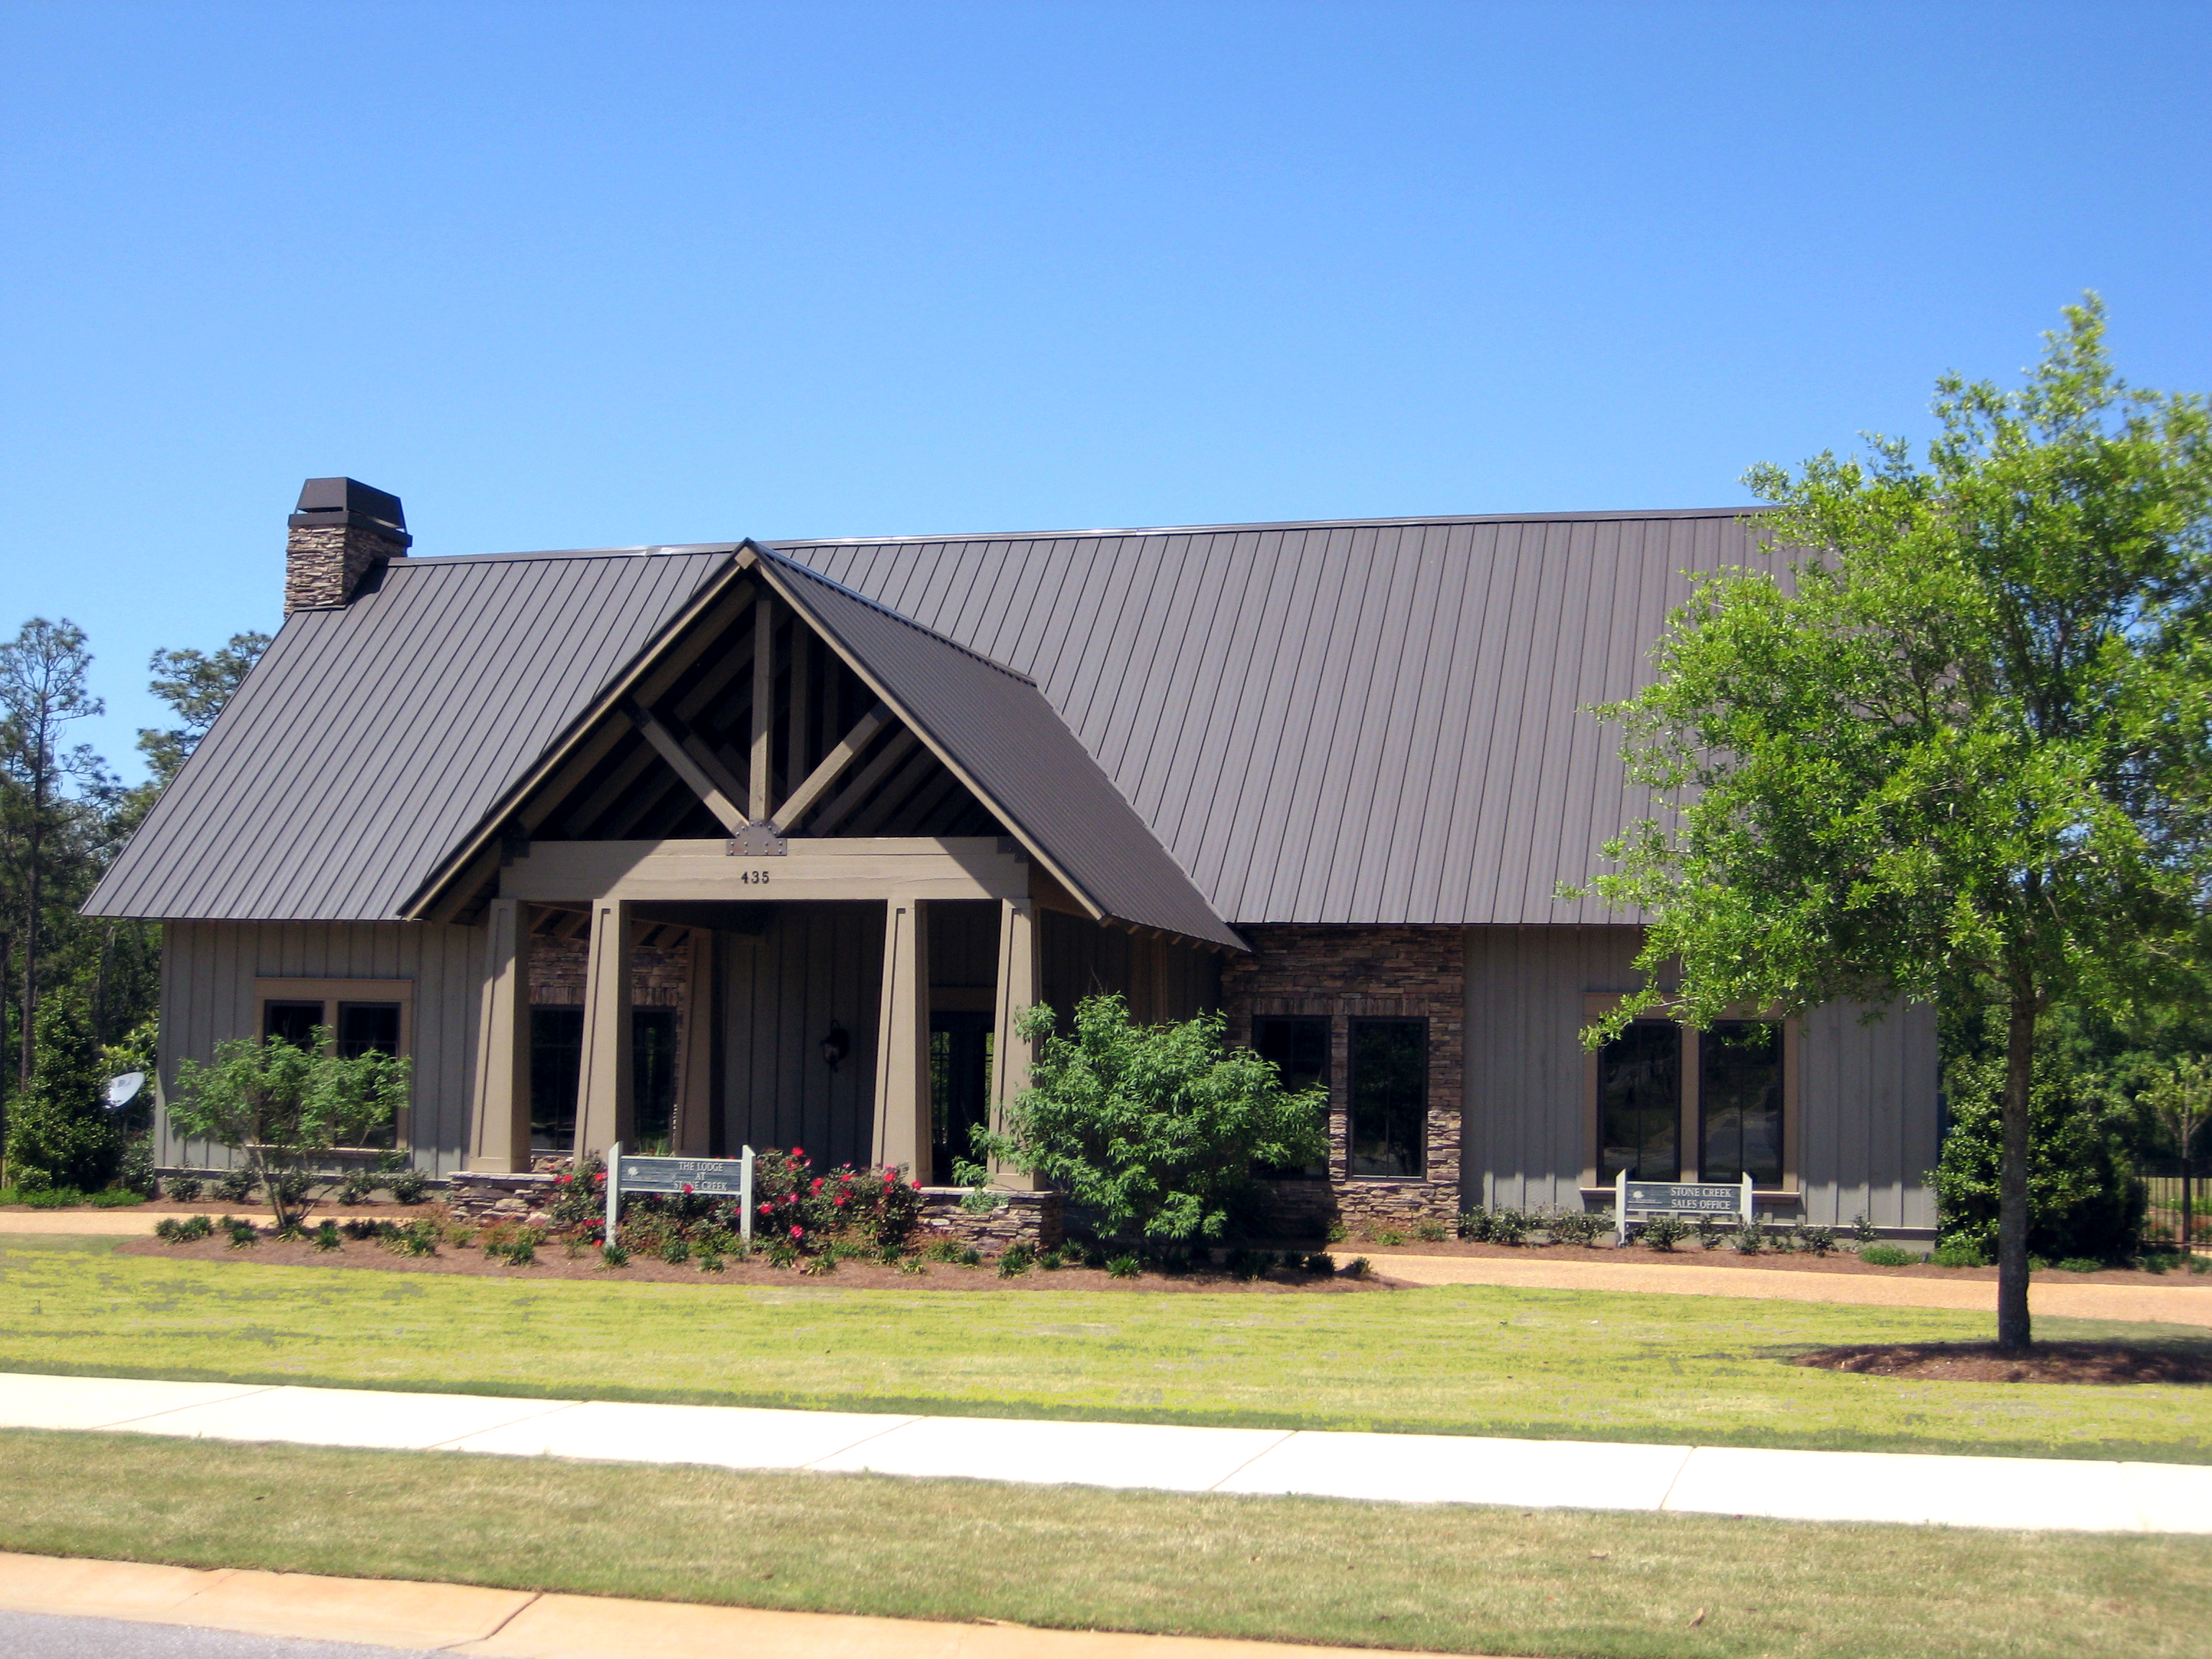 The Lodge at Stone Creek